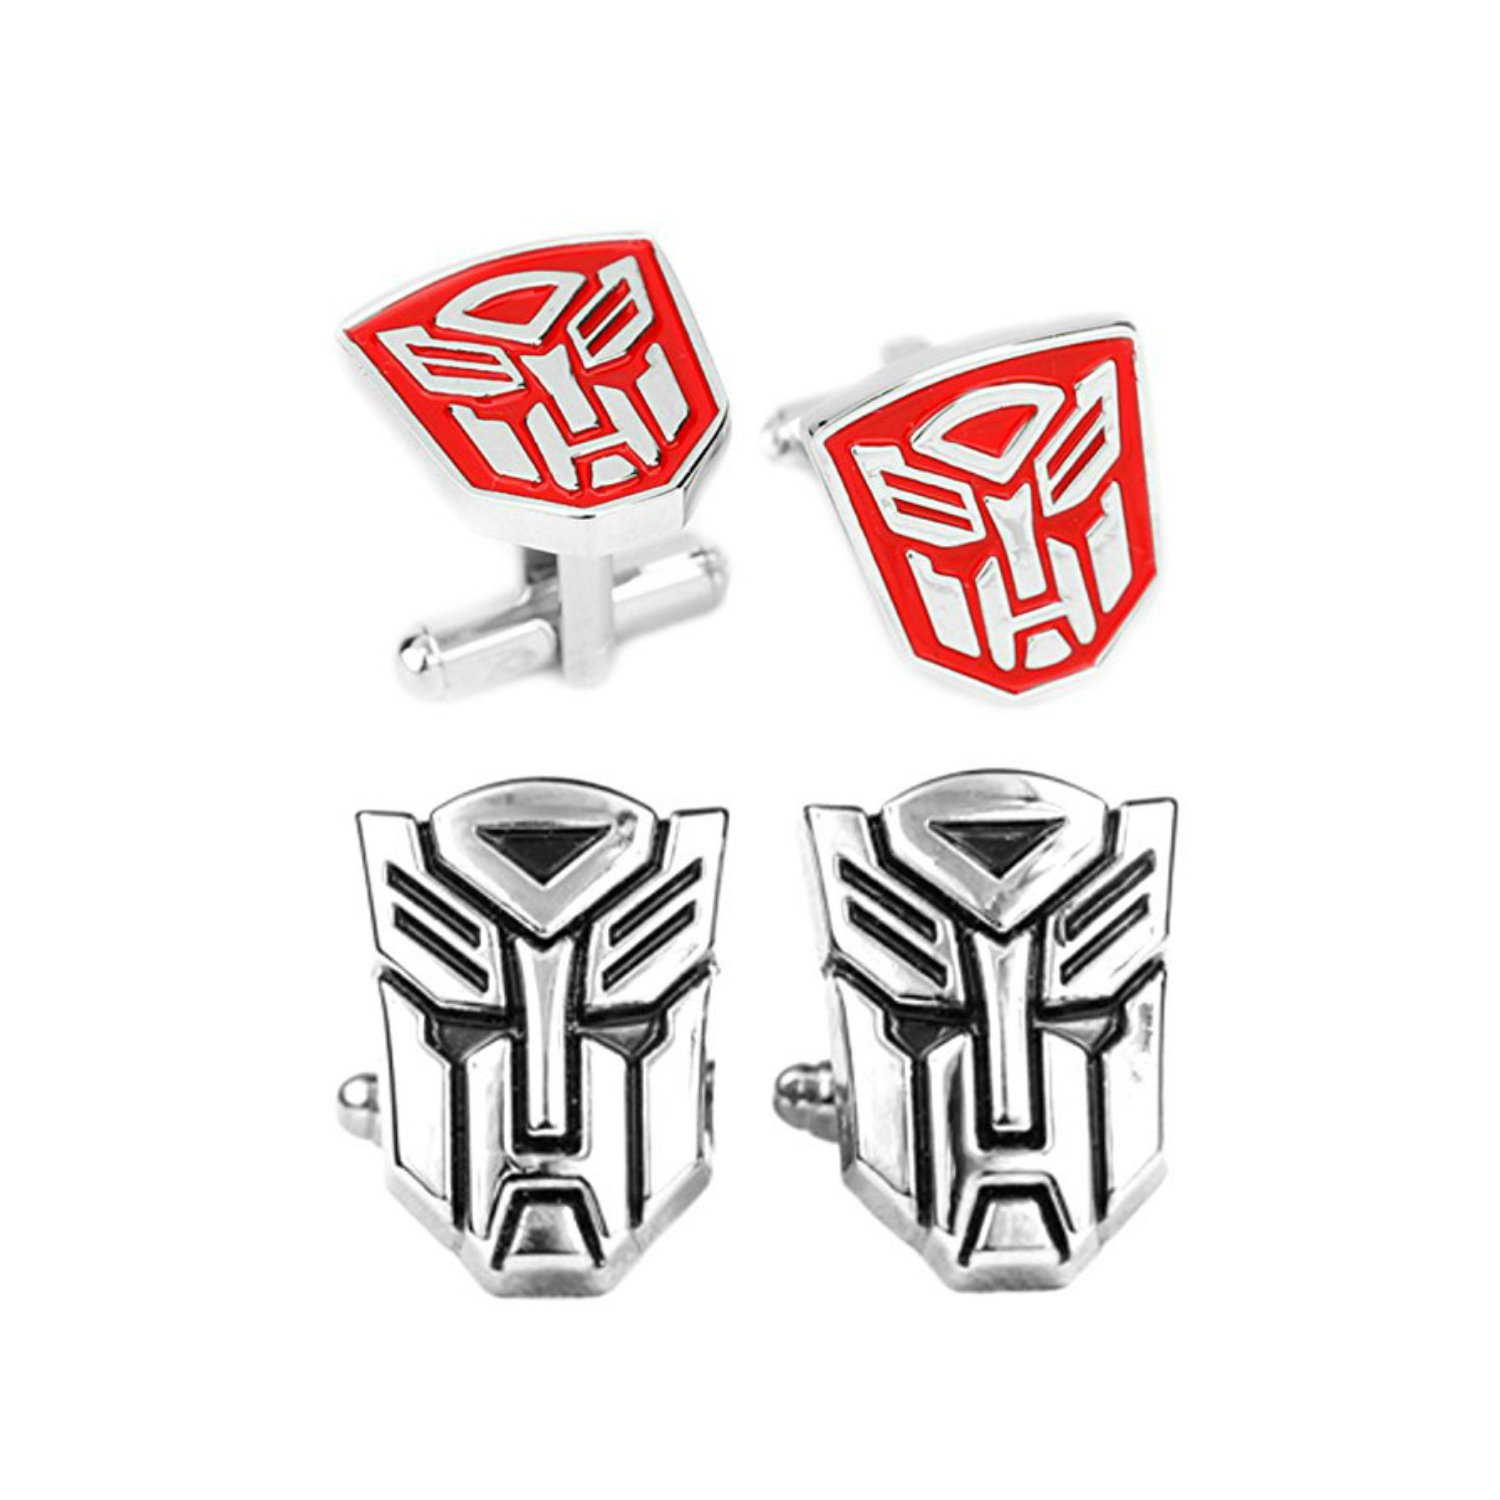 Outlander Gear Transformers 2 Pairs Red & Silver Superhero 2018 Movie Mens Boys Cufflinks